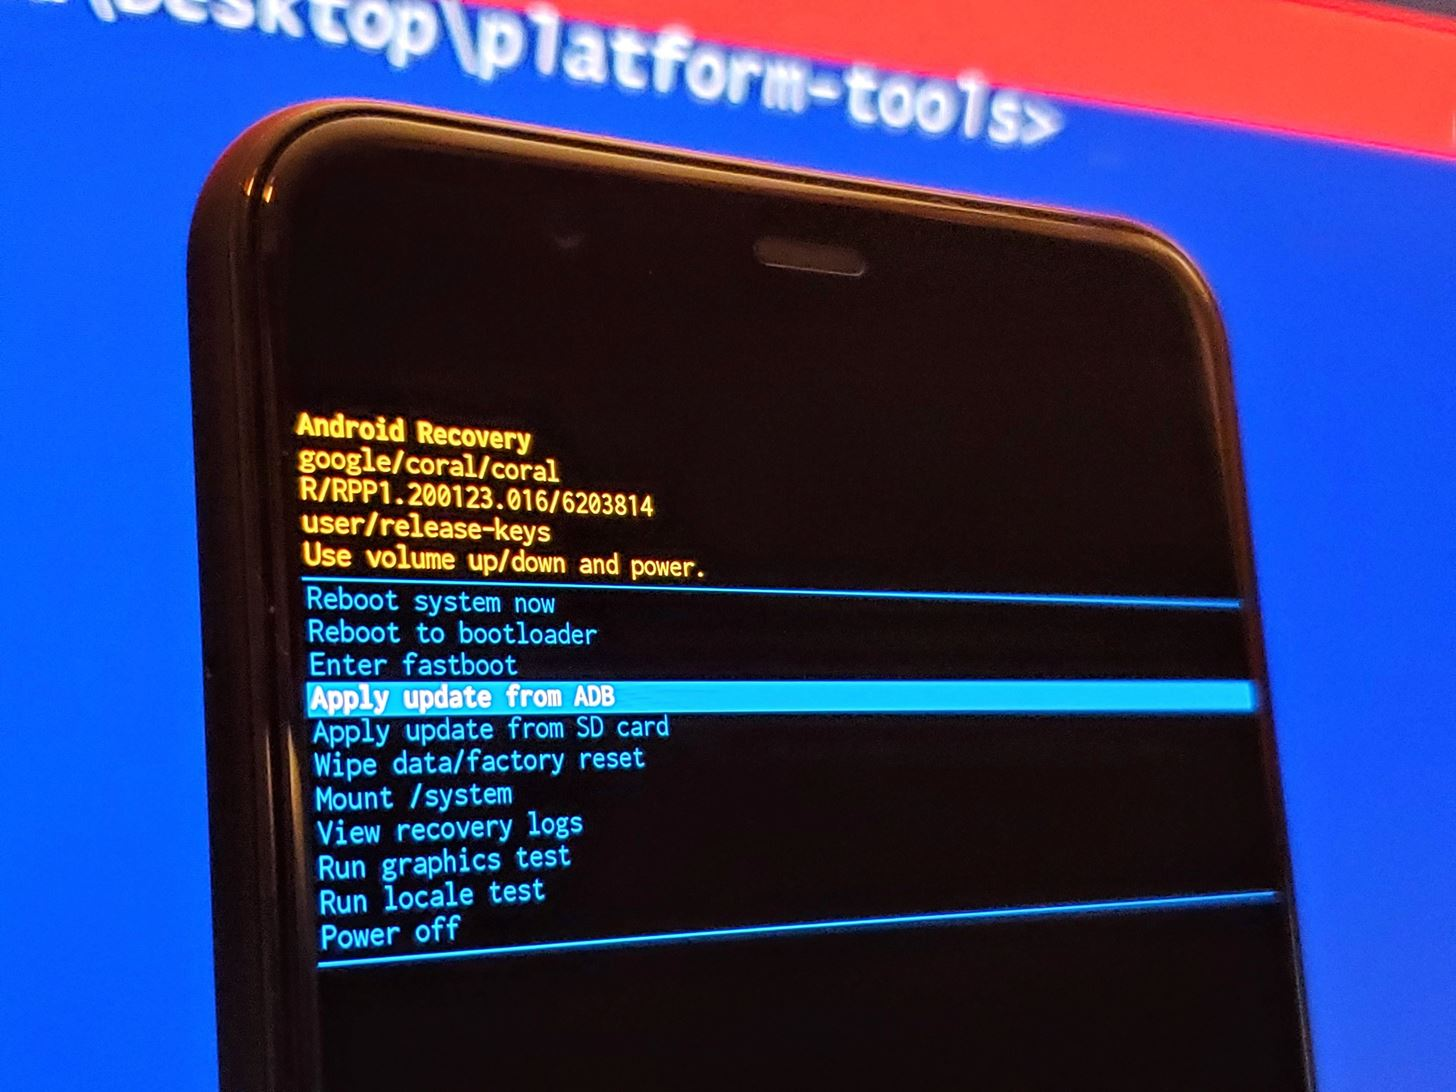 How to Install Android 11 on Your Pixel Without Unlocking the Bootloader or Losing Data